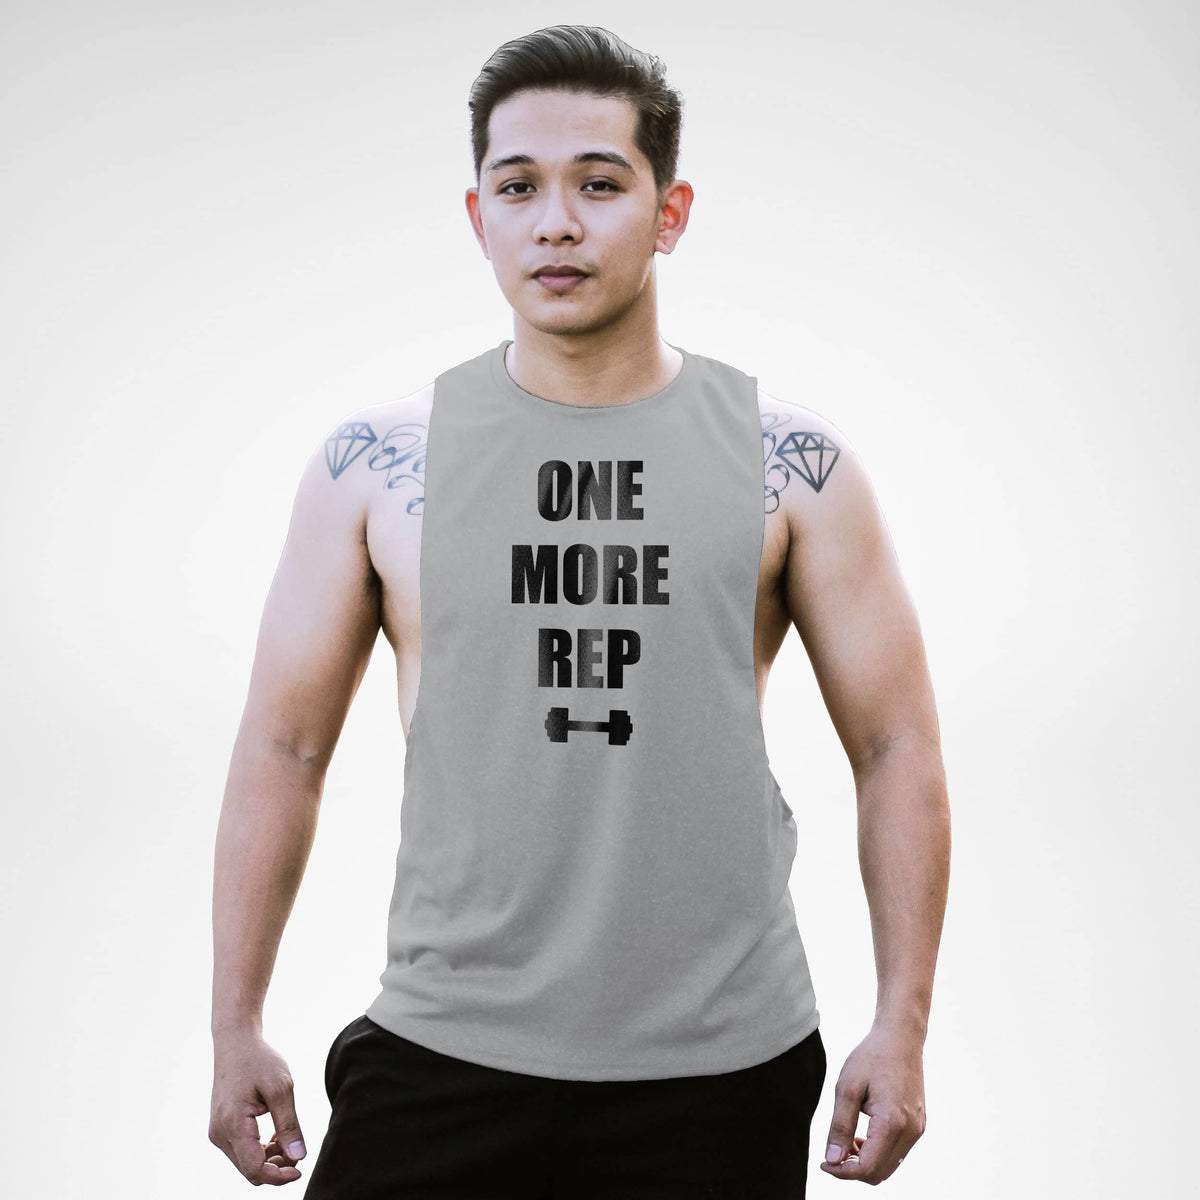 AM130 One More Rep Openside Tank Top